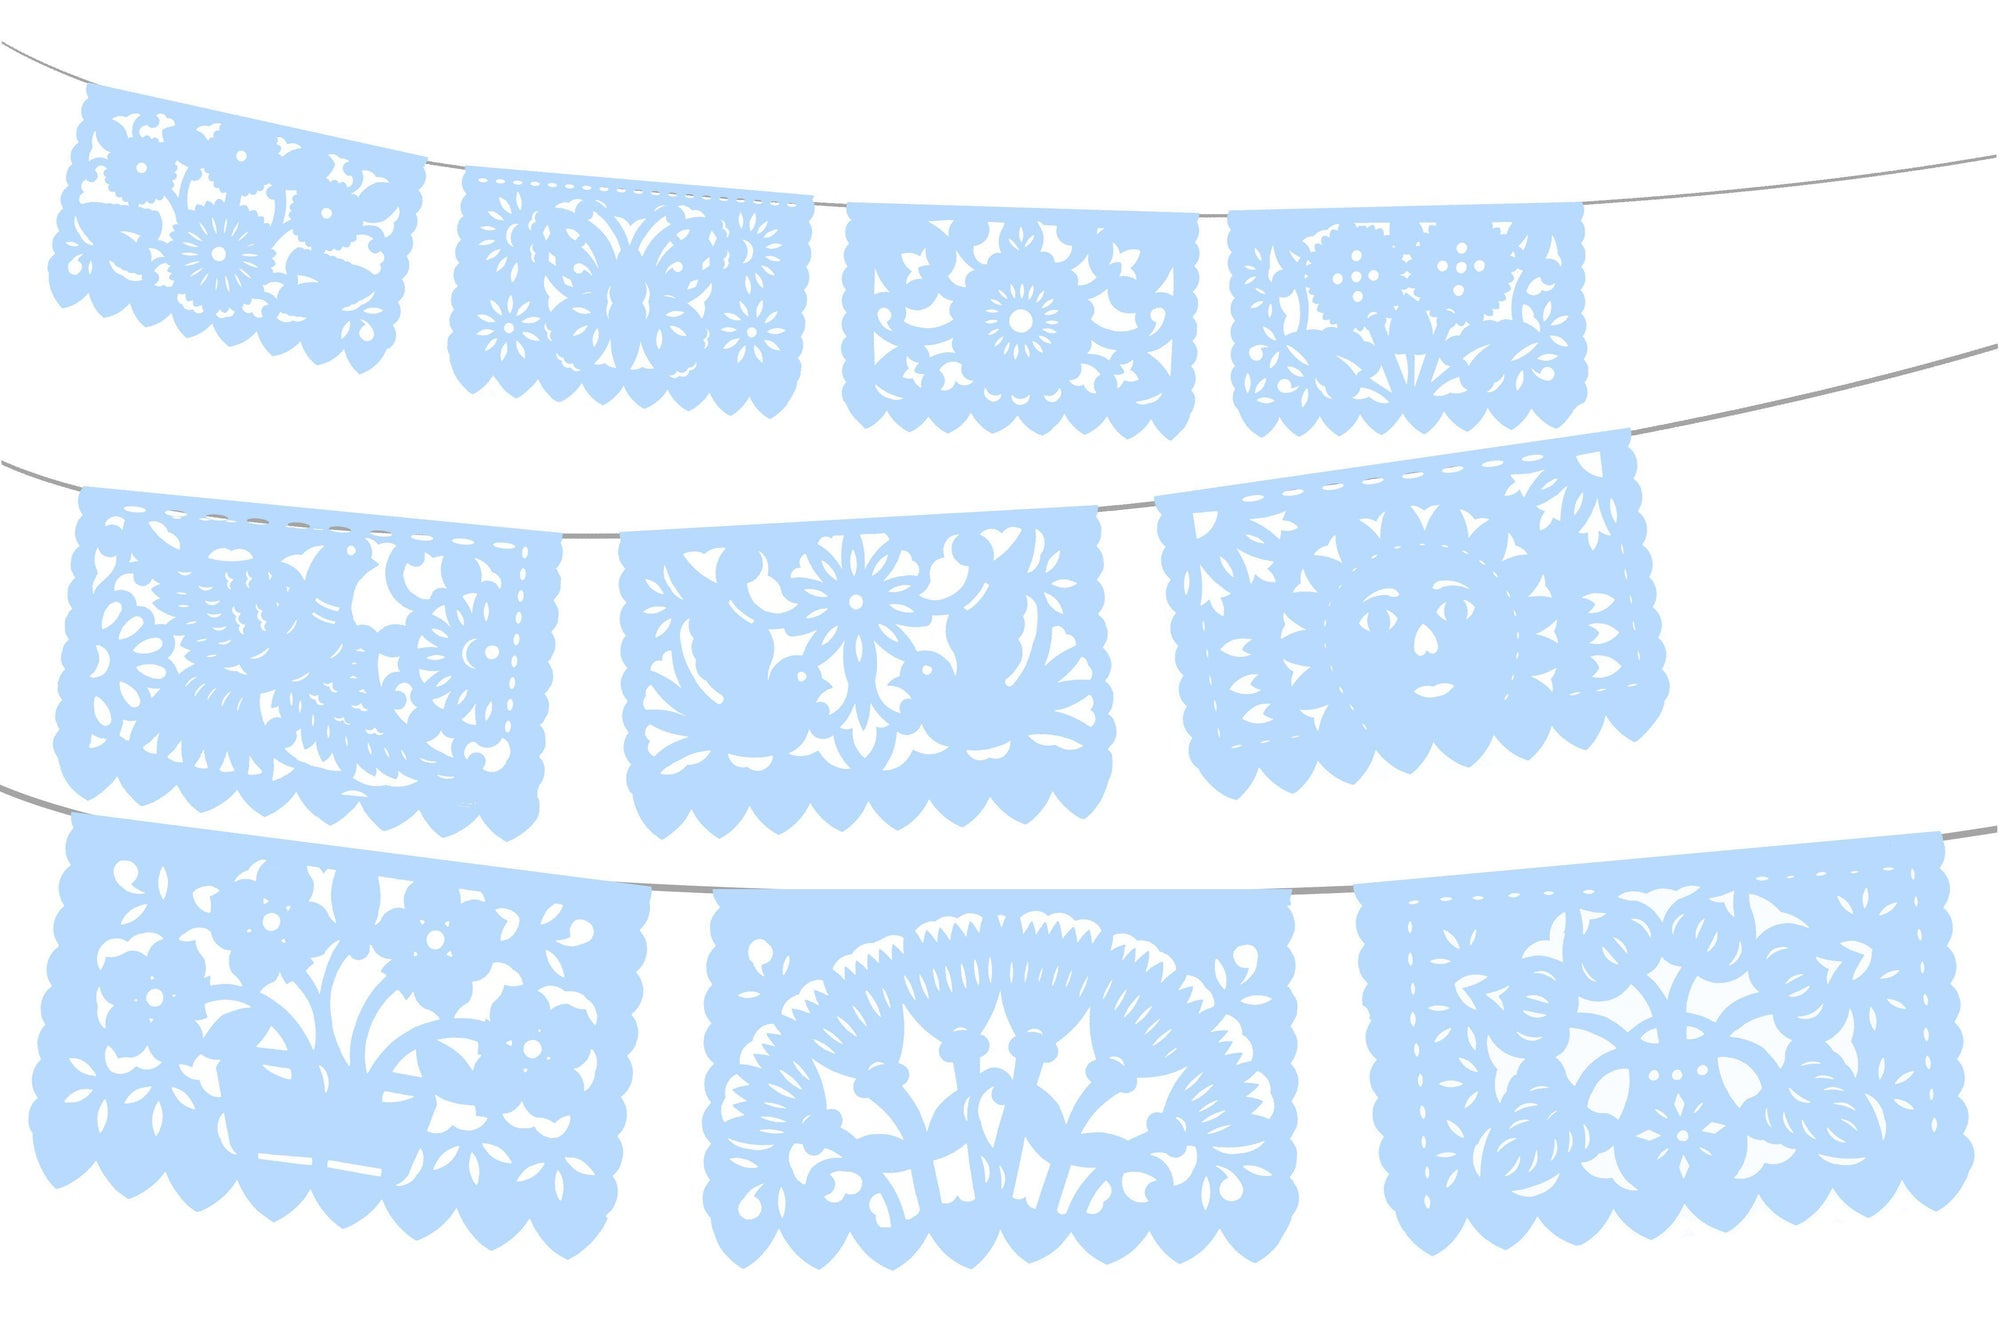 Mexican Party Supplies 5pk Banners in Light Blue WS900